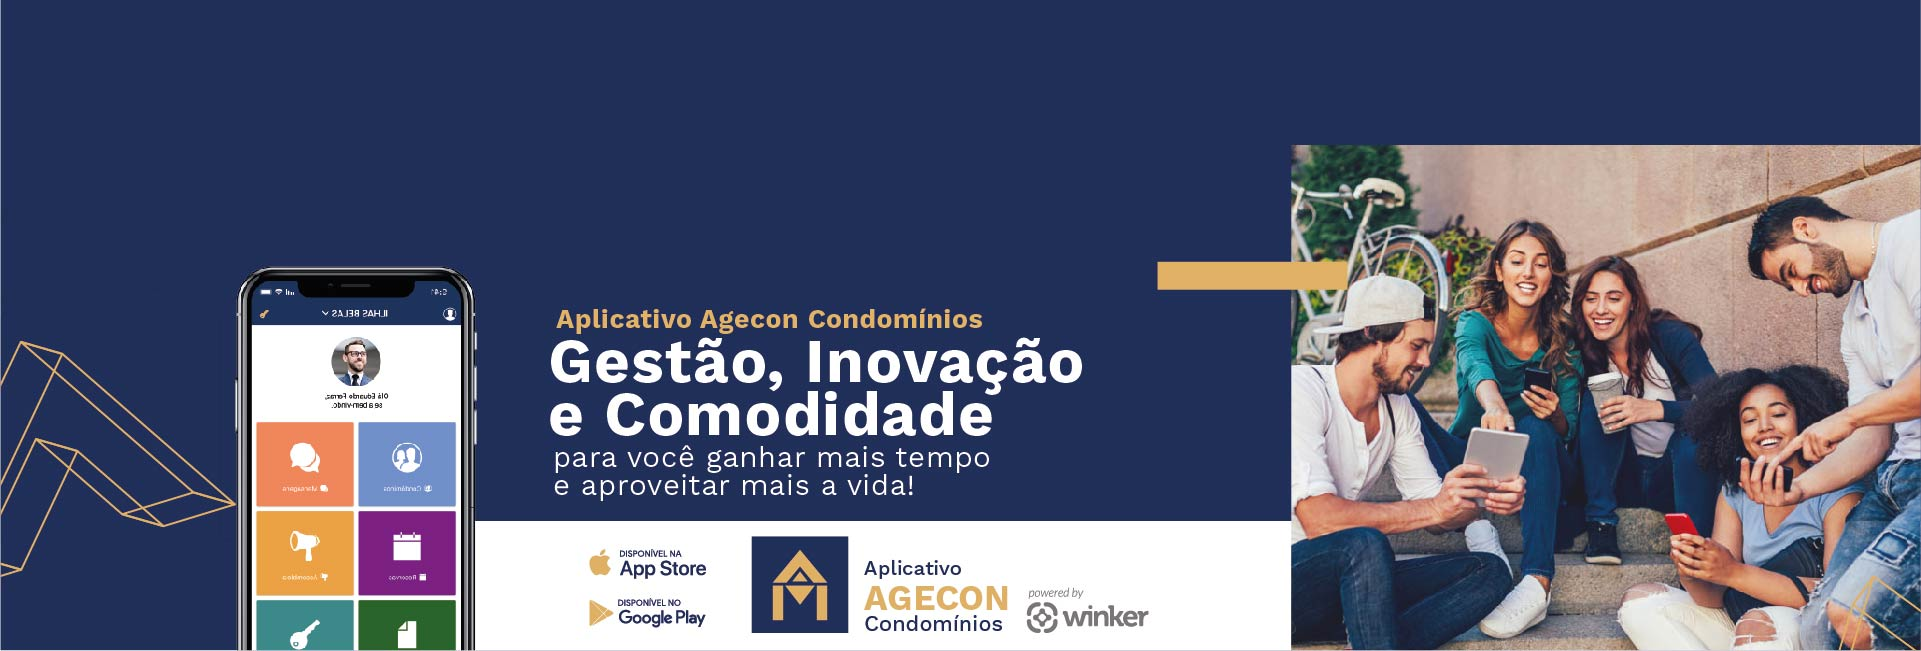 Filial Agecon Minas